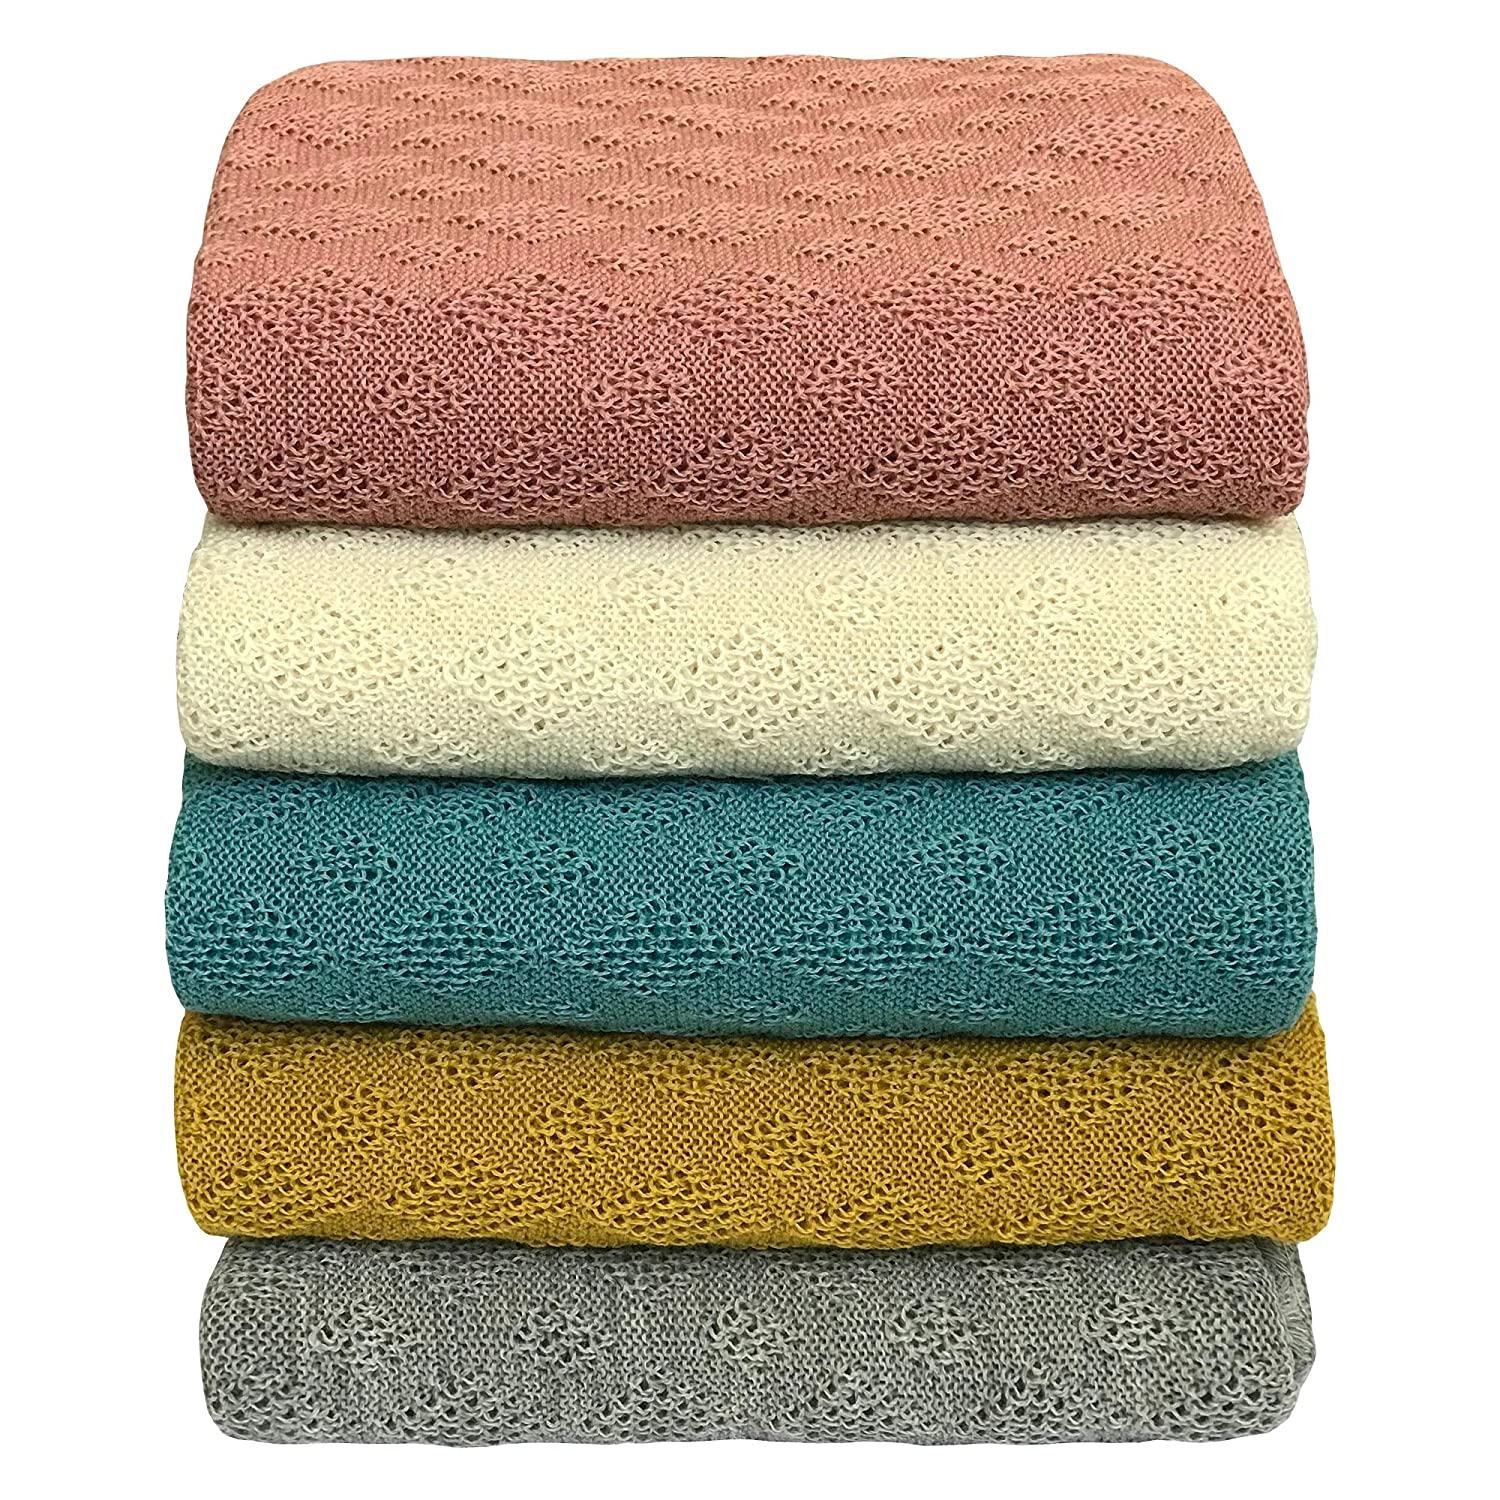 Washable Merino Wool Receiving Thermal Blanket 31x40 inches Baby Warm Blanket